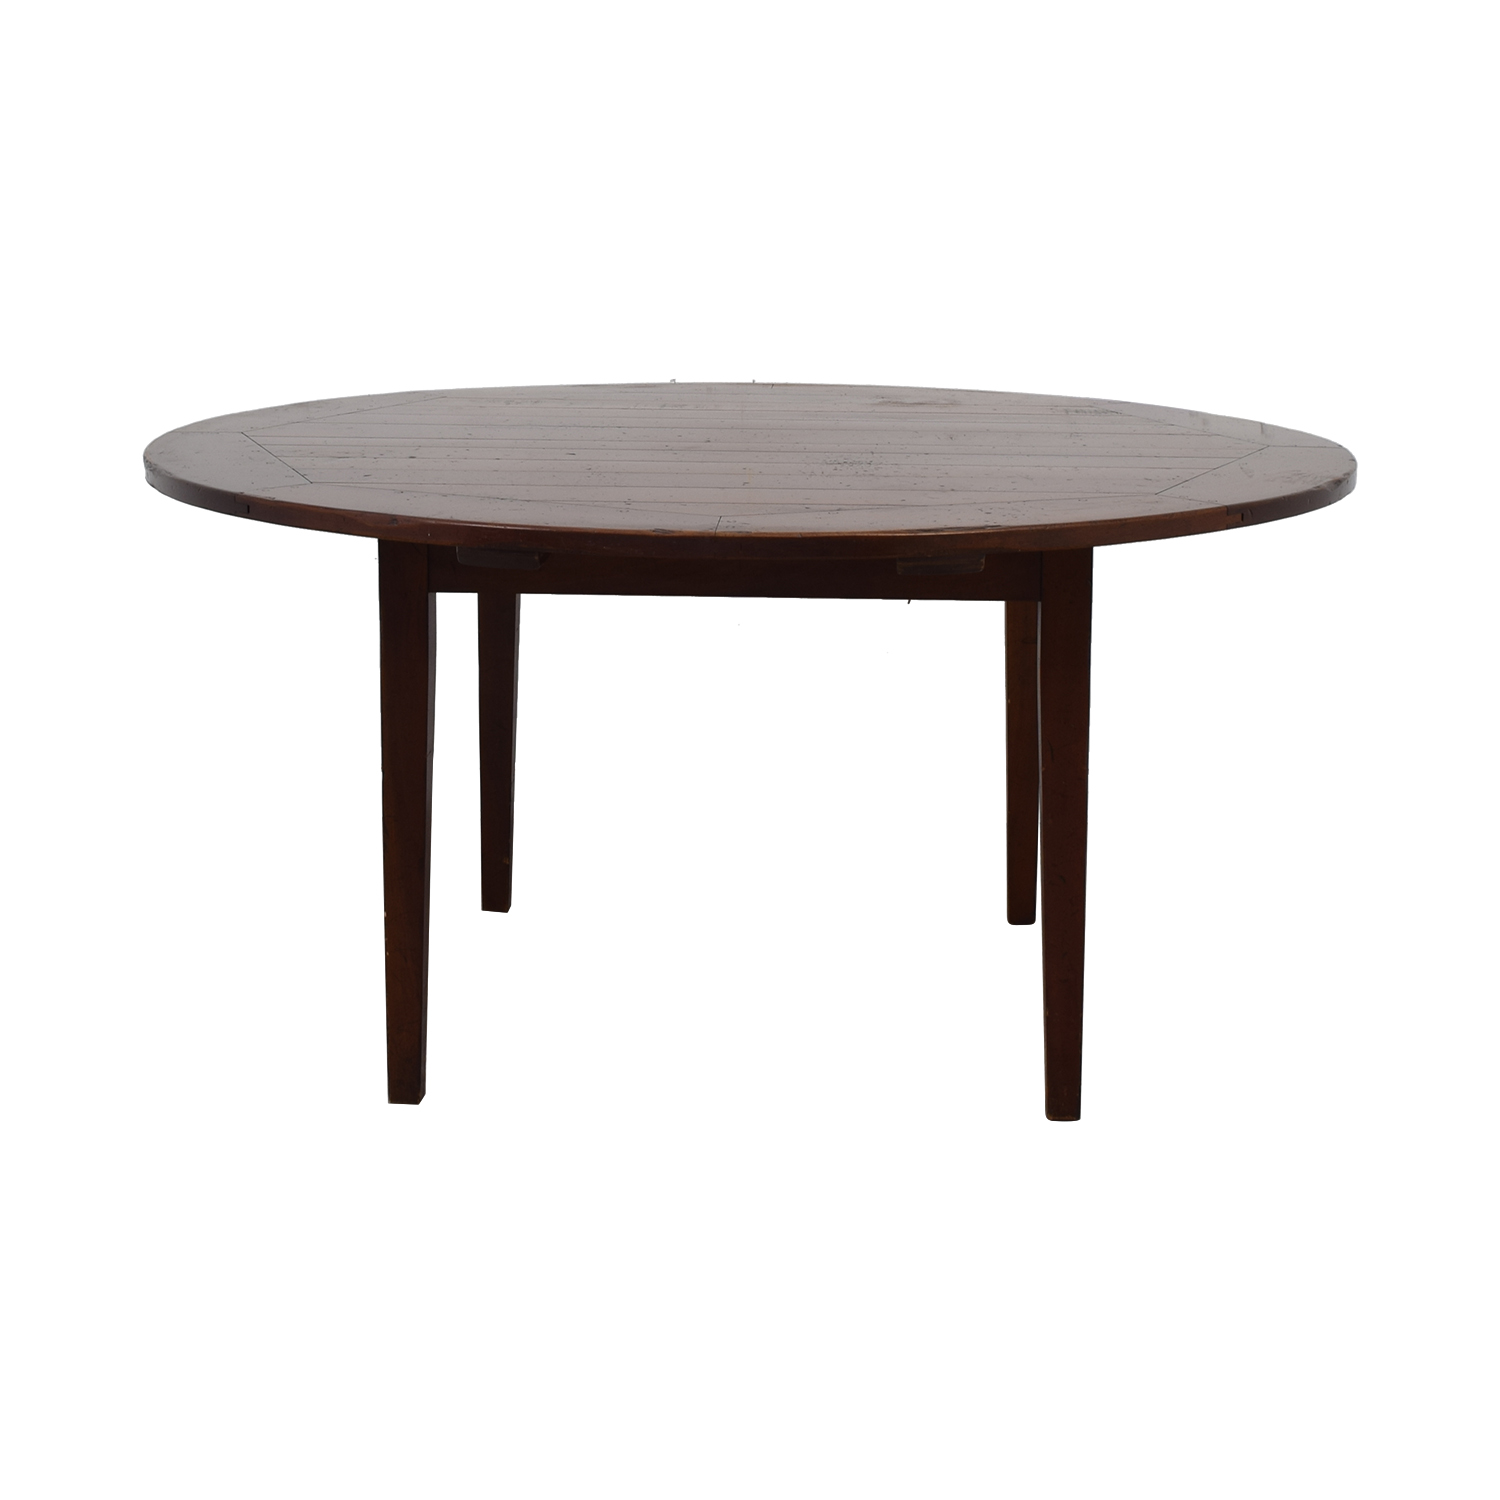 Rustic Round Wood Dining Table nj